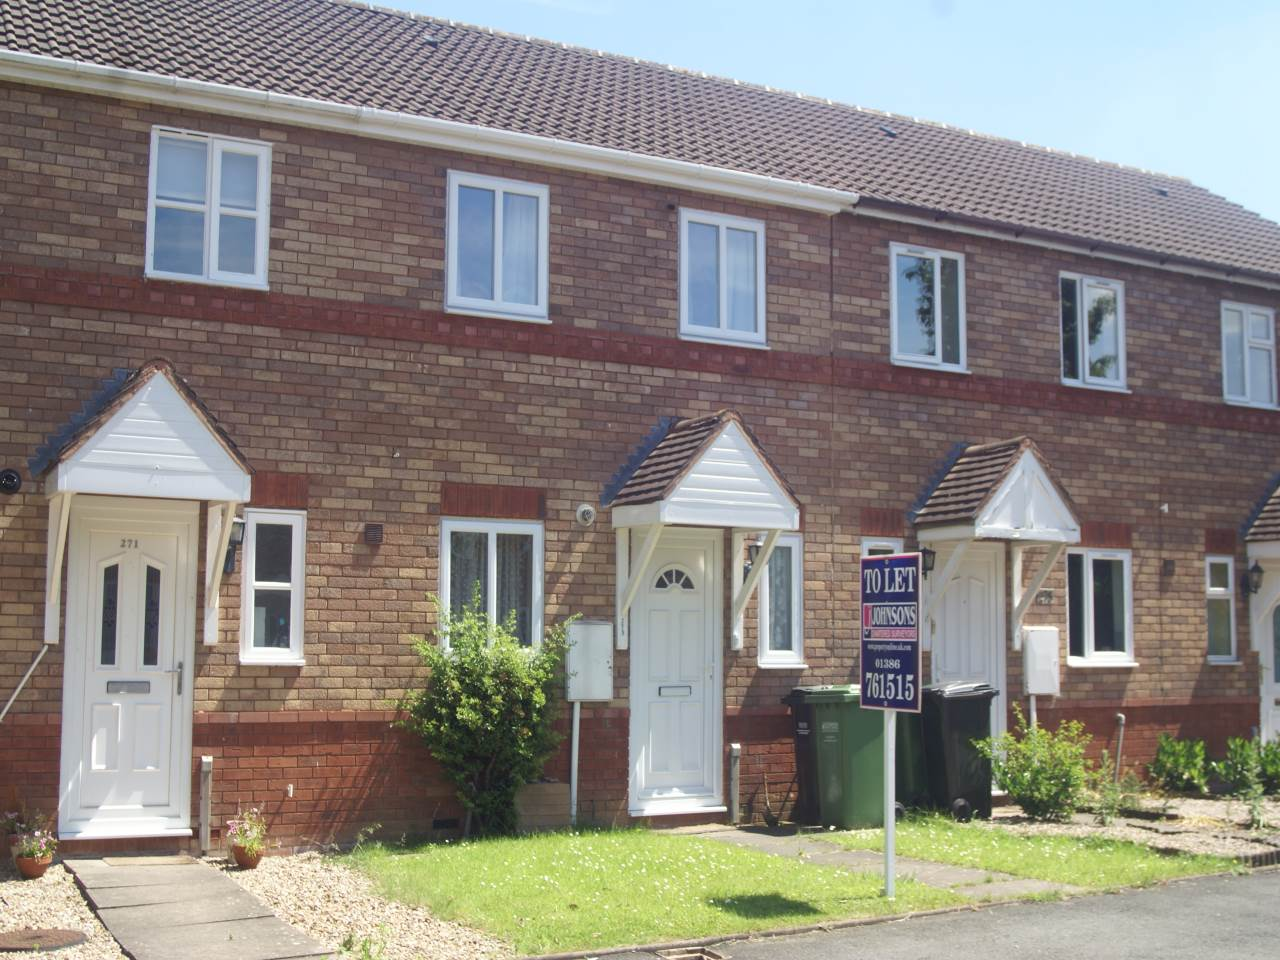 273 St Philips Drive, Evesham, Worcestershire